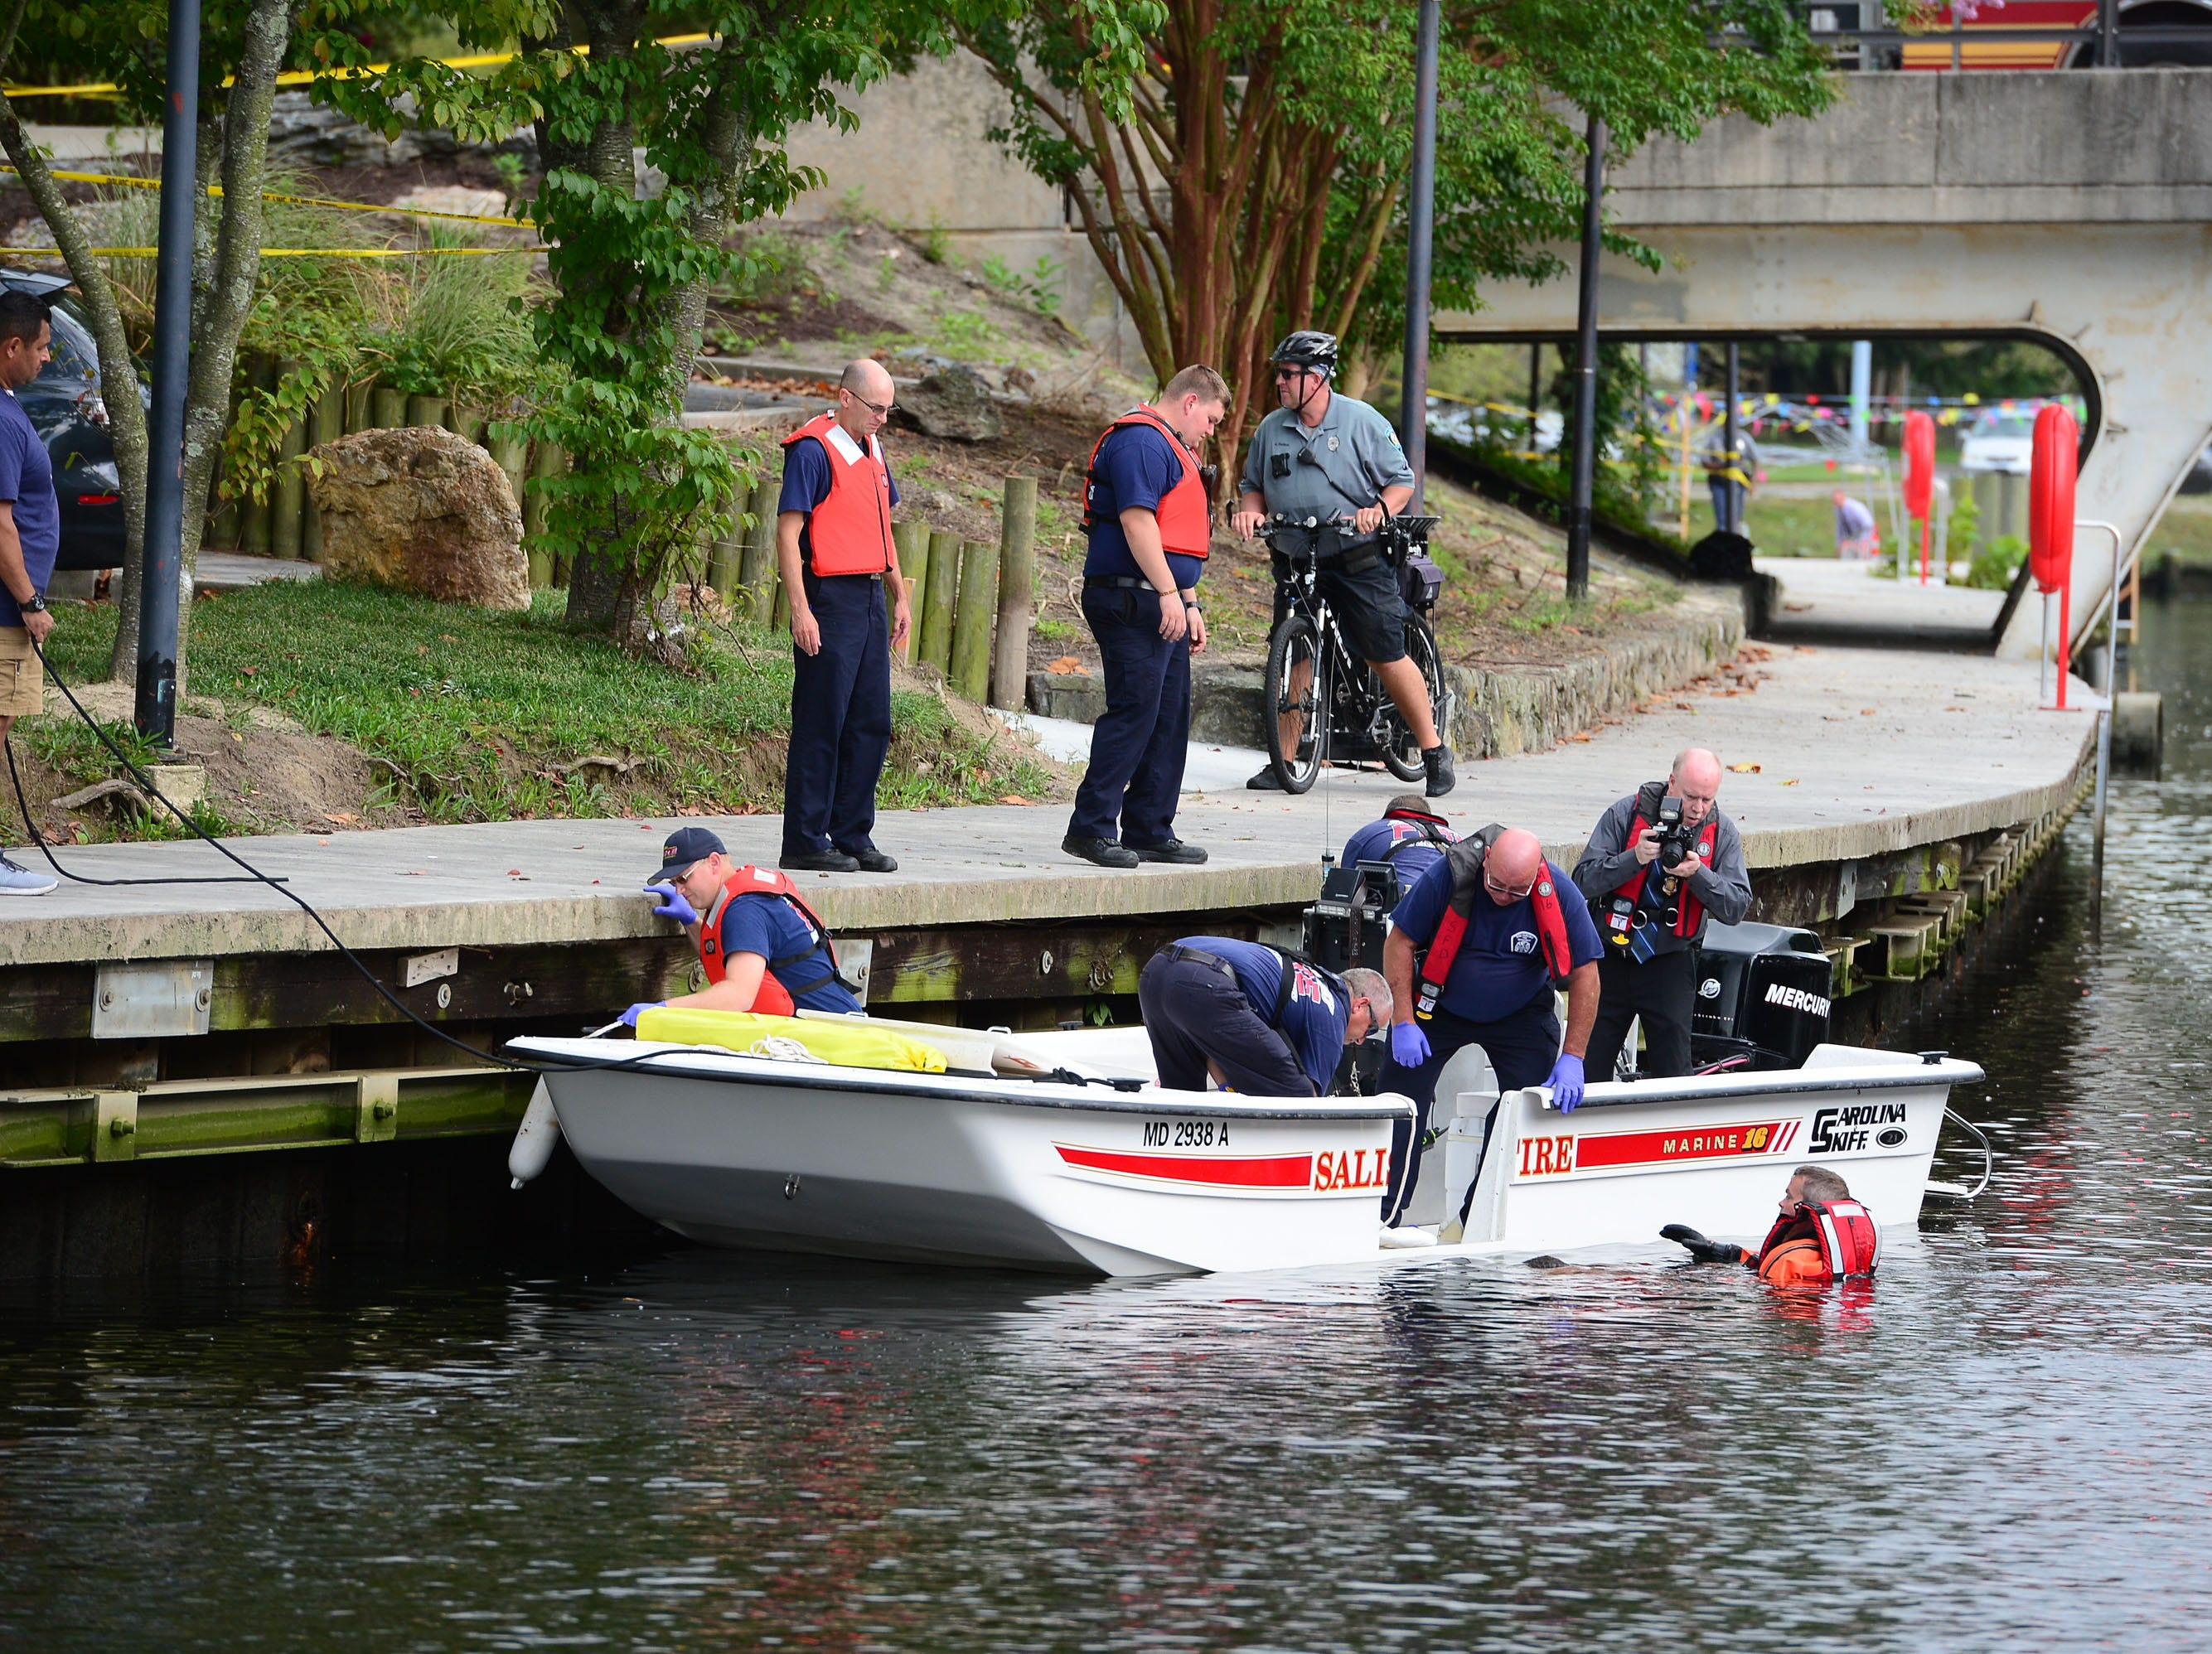 A Salisbury Fire Department diver helps remove a body that was found in the Wicomico River near the South Division Street around 12:30 p.m.